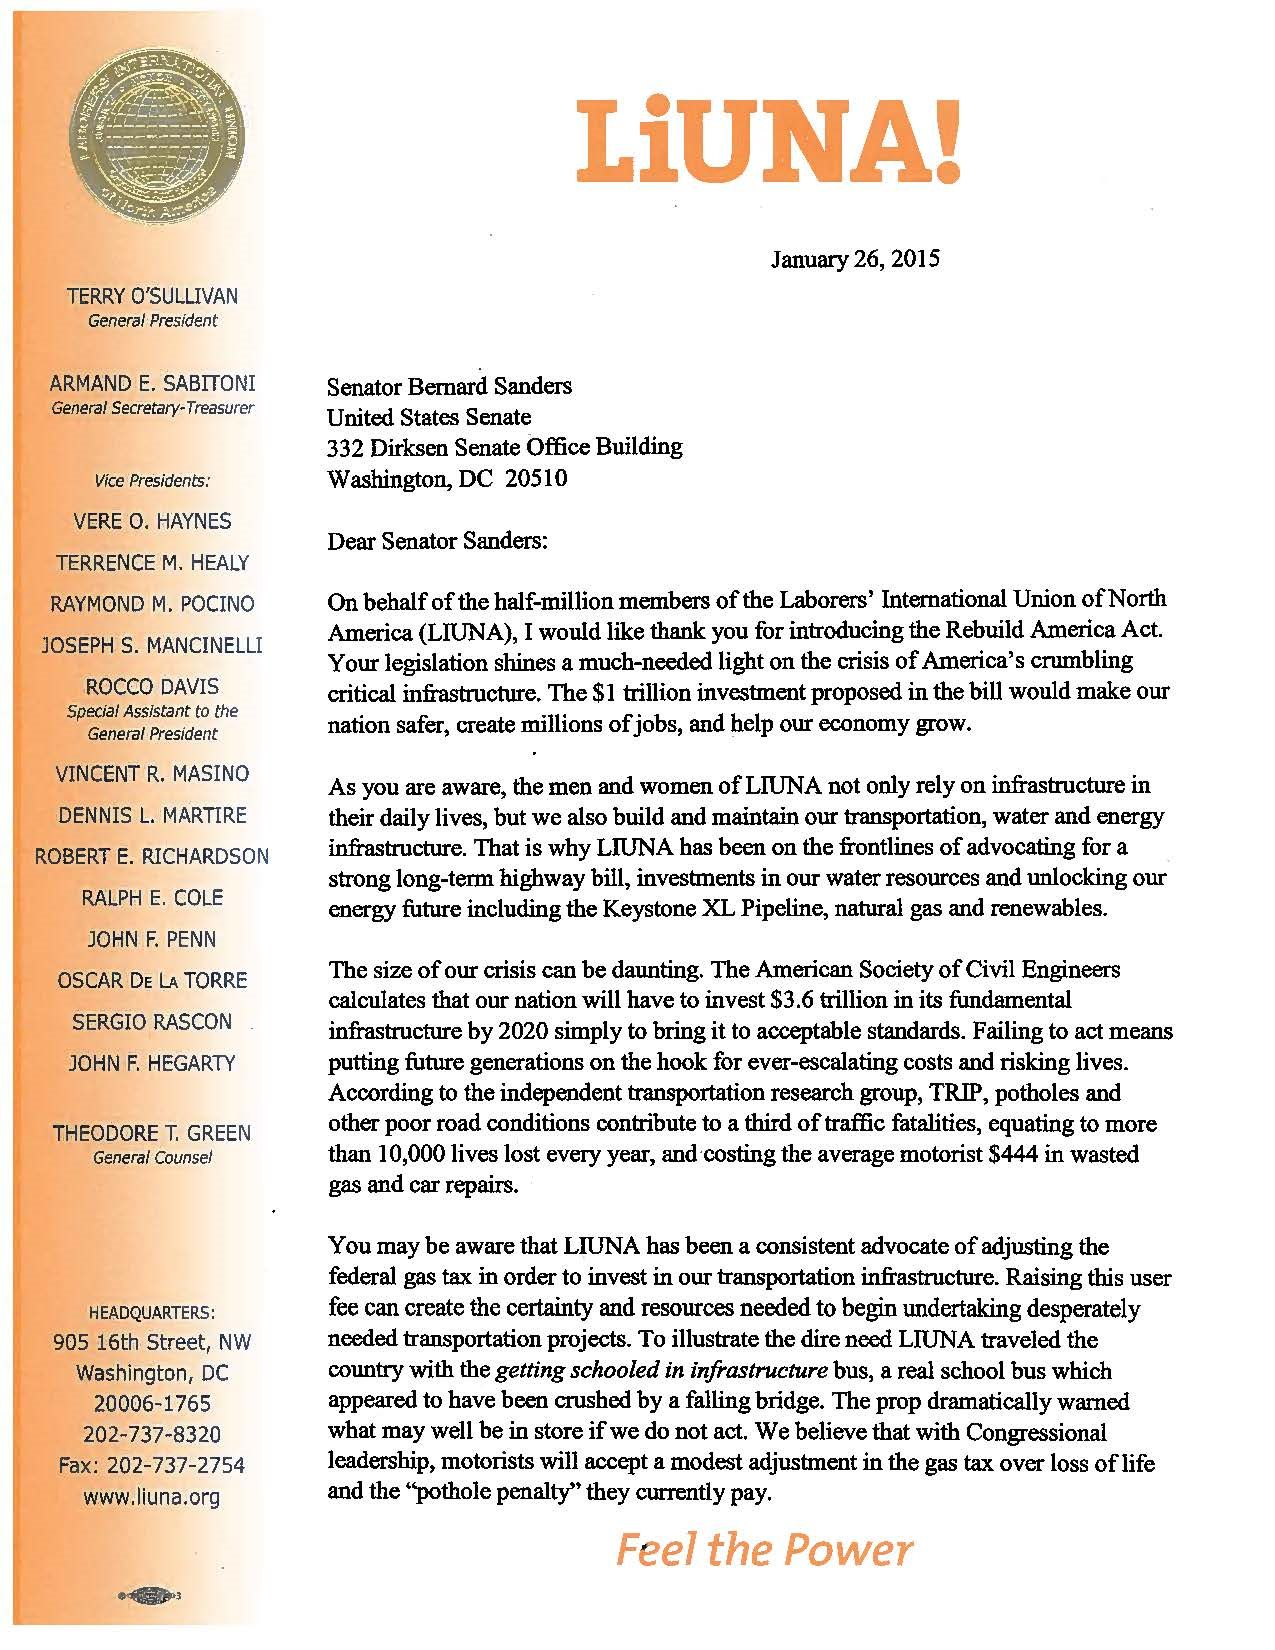 LIUNA Letter in Support of Senator Sanders Rebuild America Act_Page_1.jpg